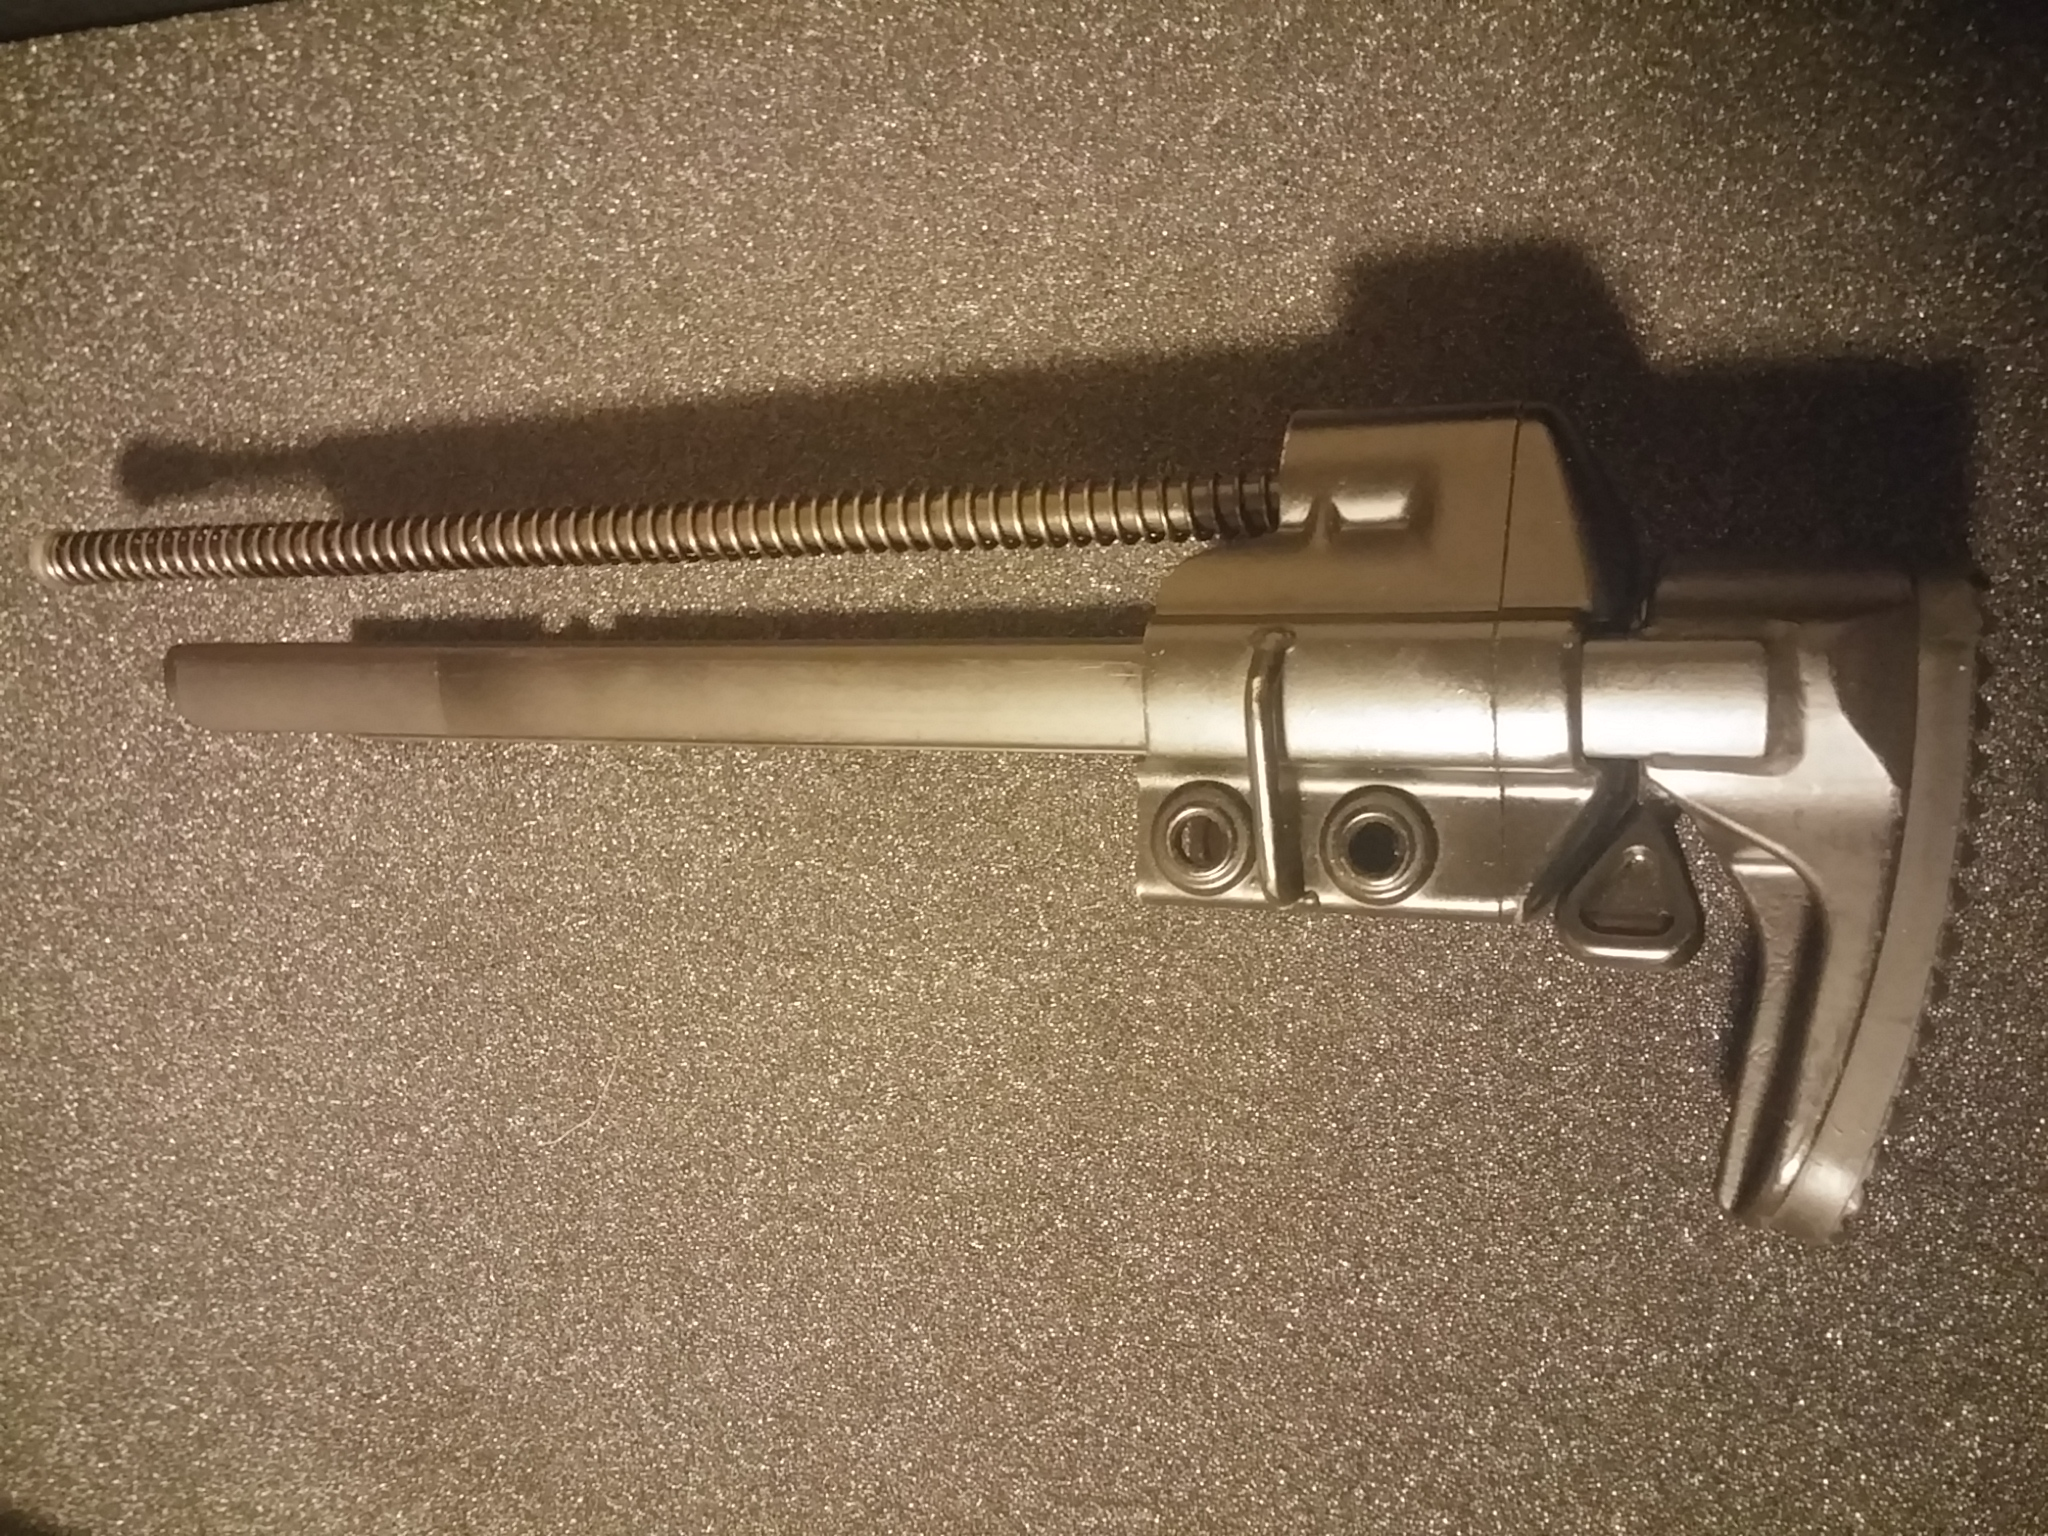 WTS PTR 91 pdw retractable stock, 0 shipped-0131171935_hdr.jpg